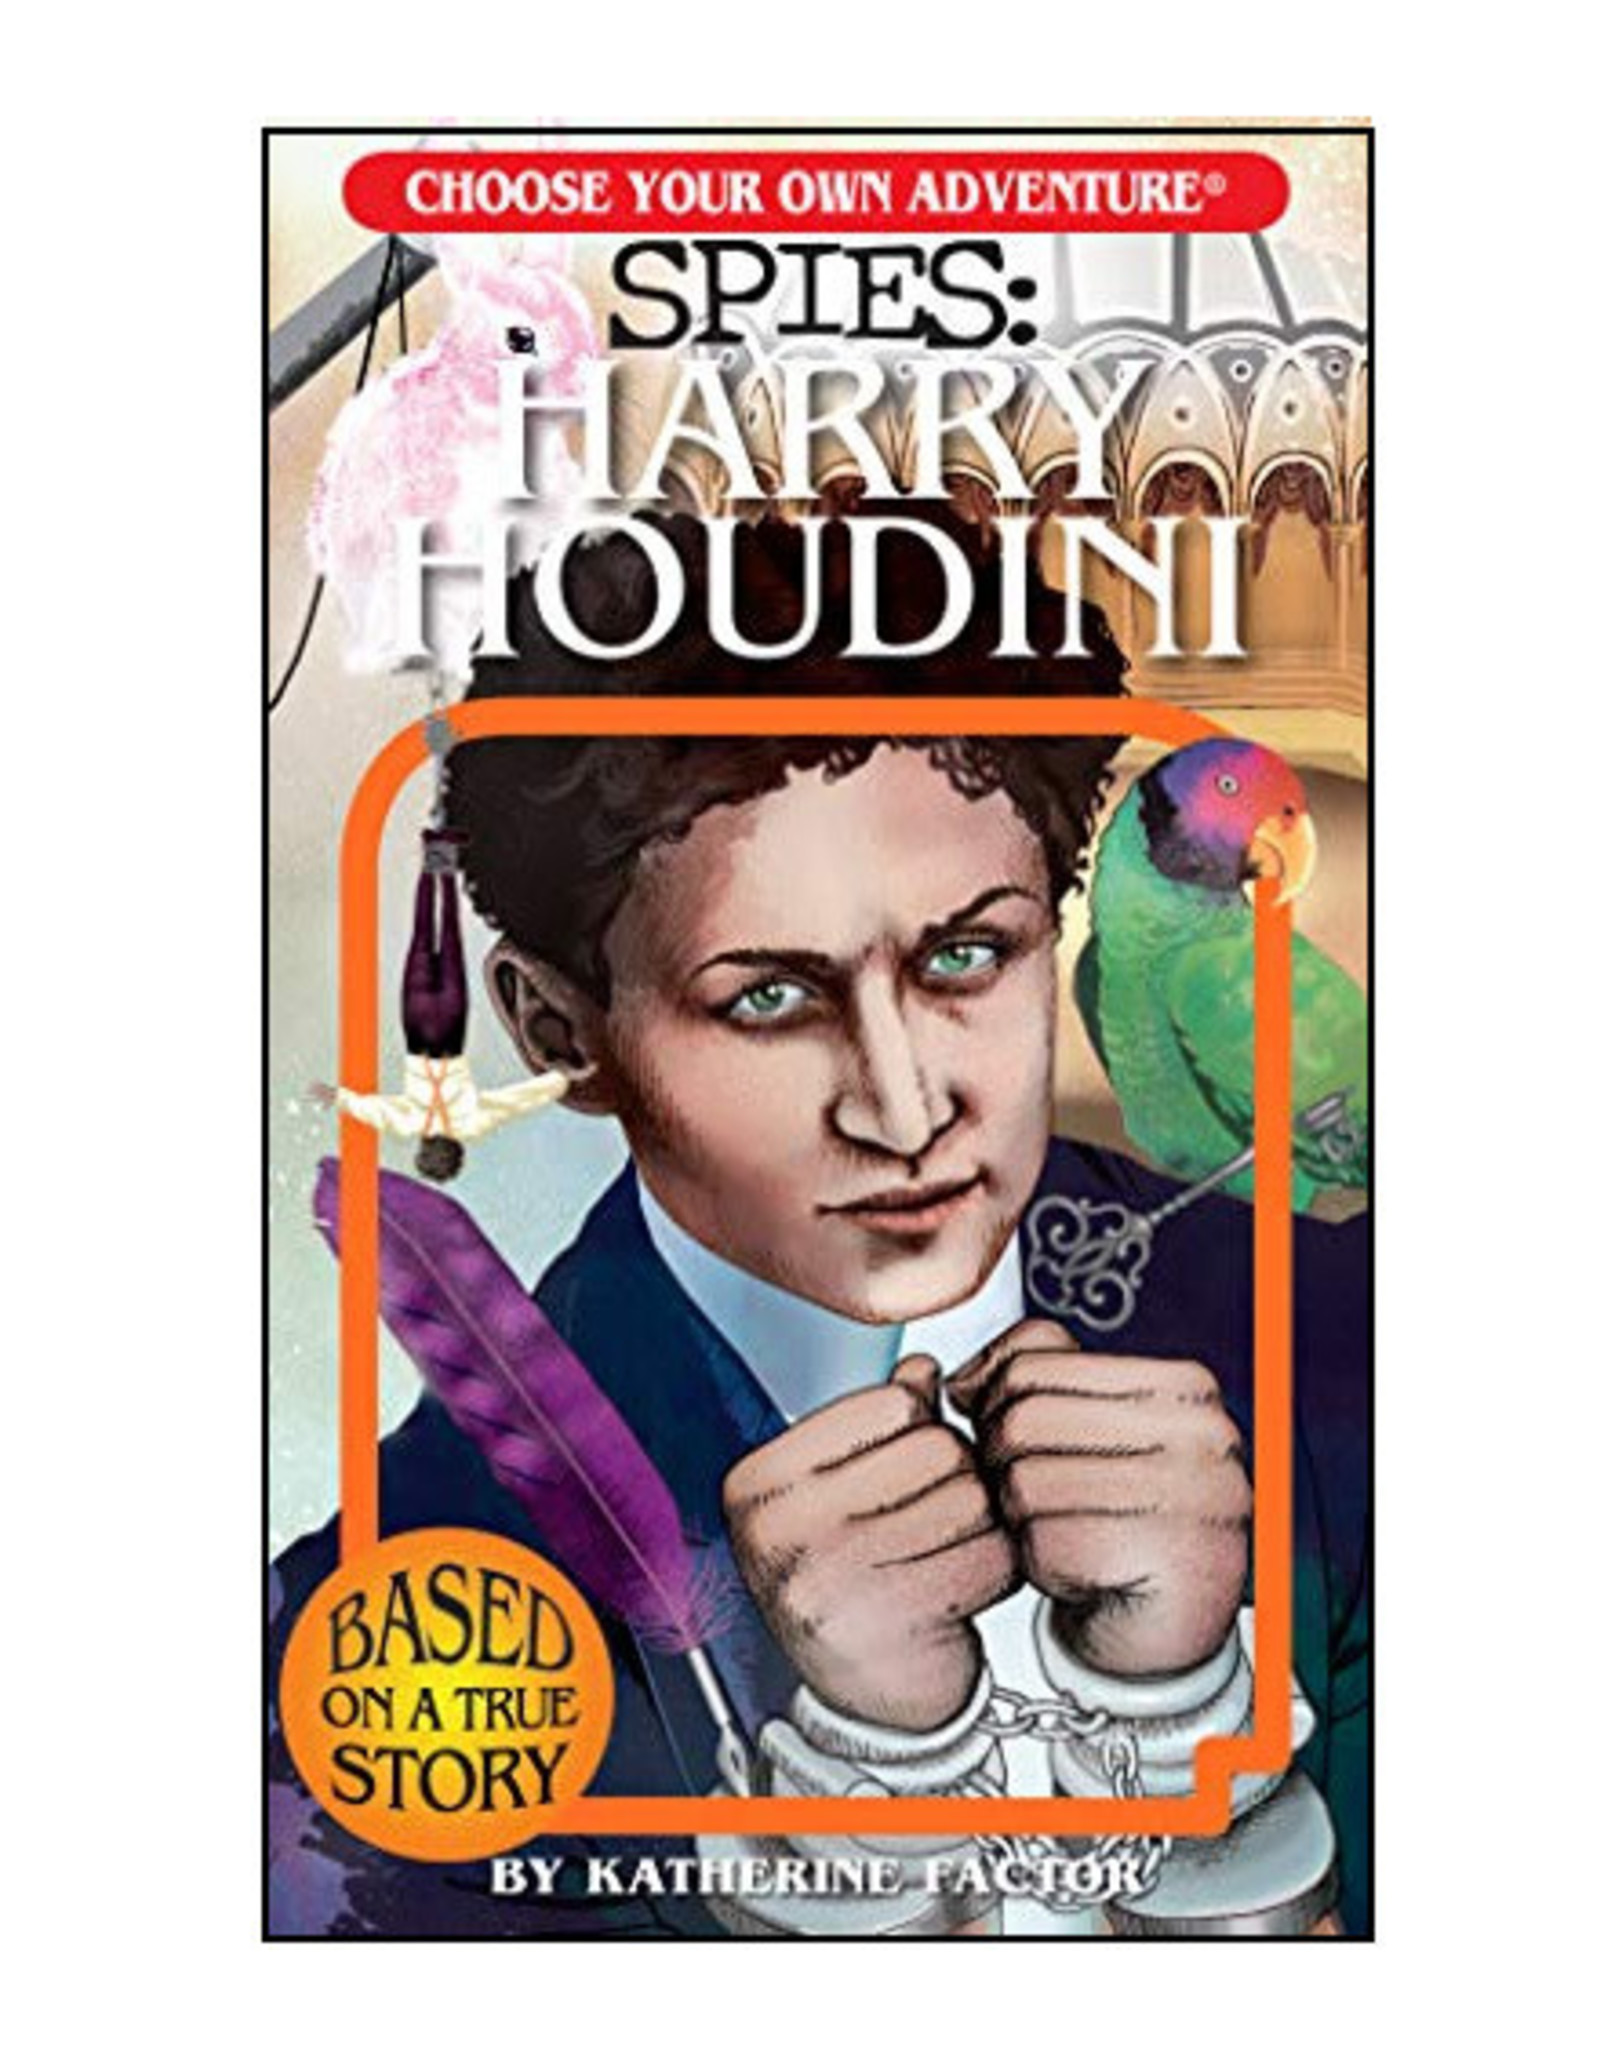 Choose Your Own Adventure Spies: Harry Houdini